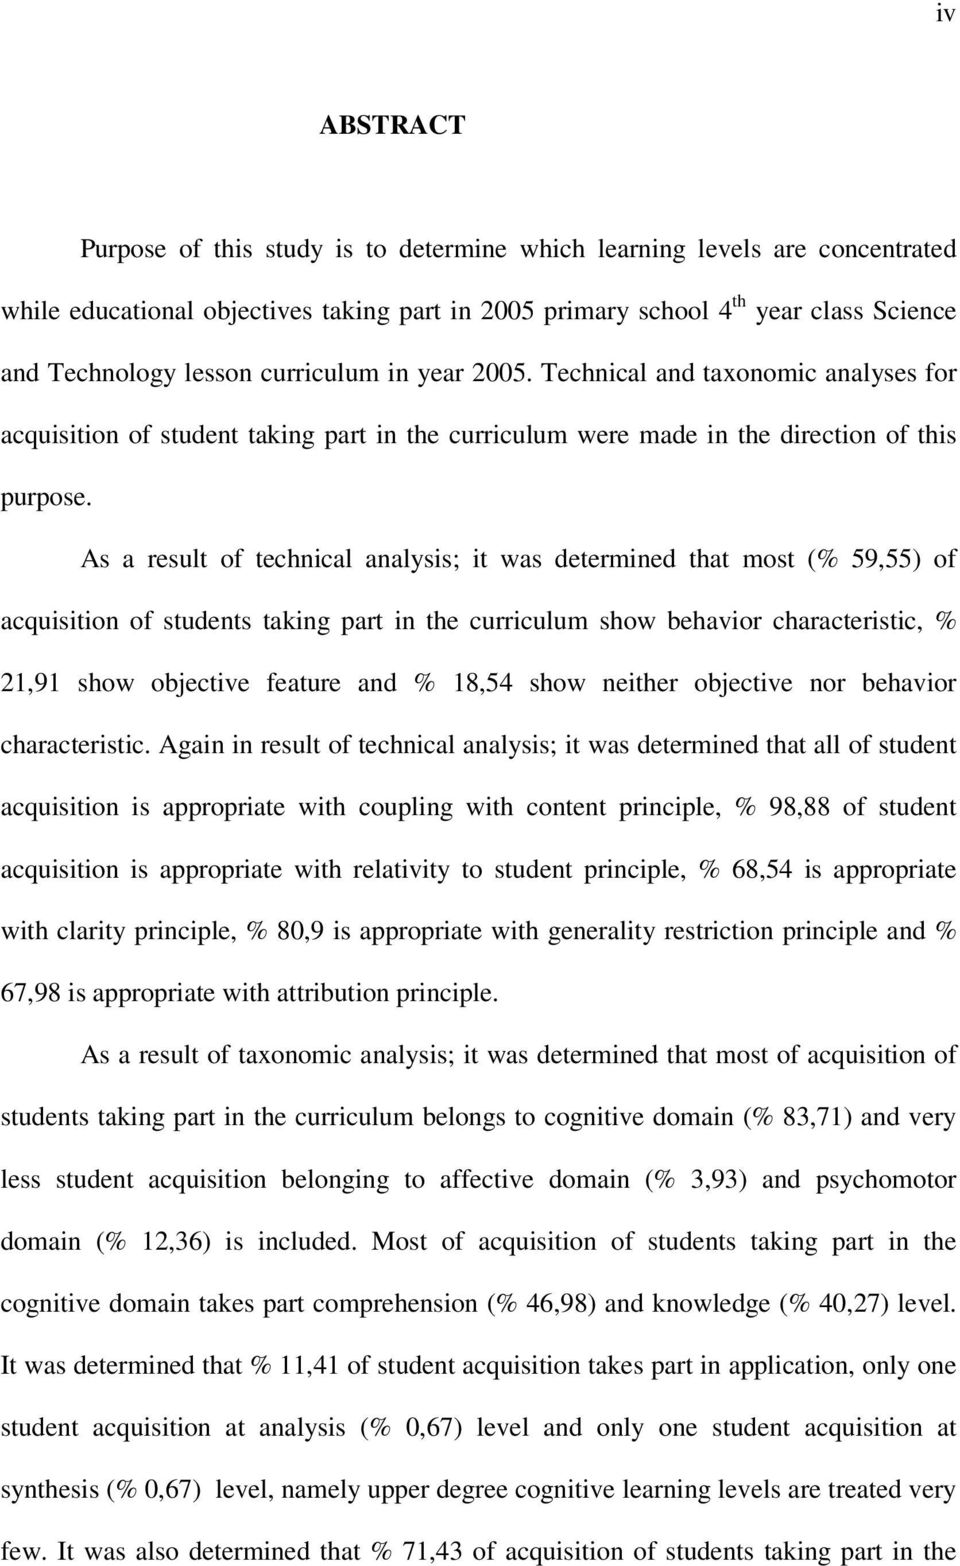 As a result of technical analysis; it was determined that most (% 59,55) of acquisition of students taking part in the curriculum show behavior characteristic, % 21,91 show objective feature and %